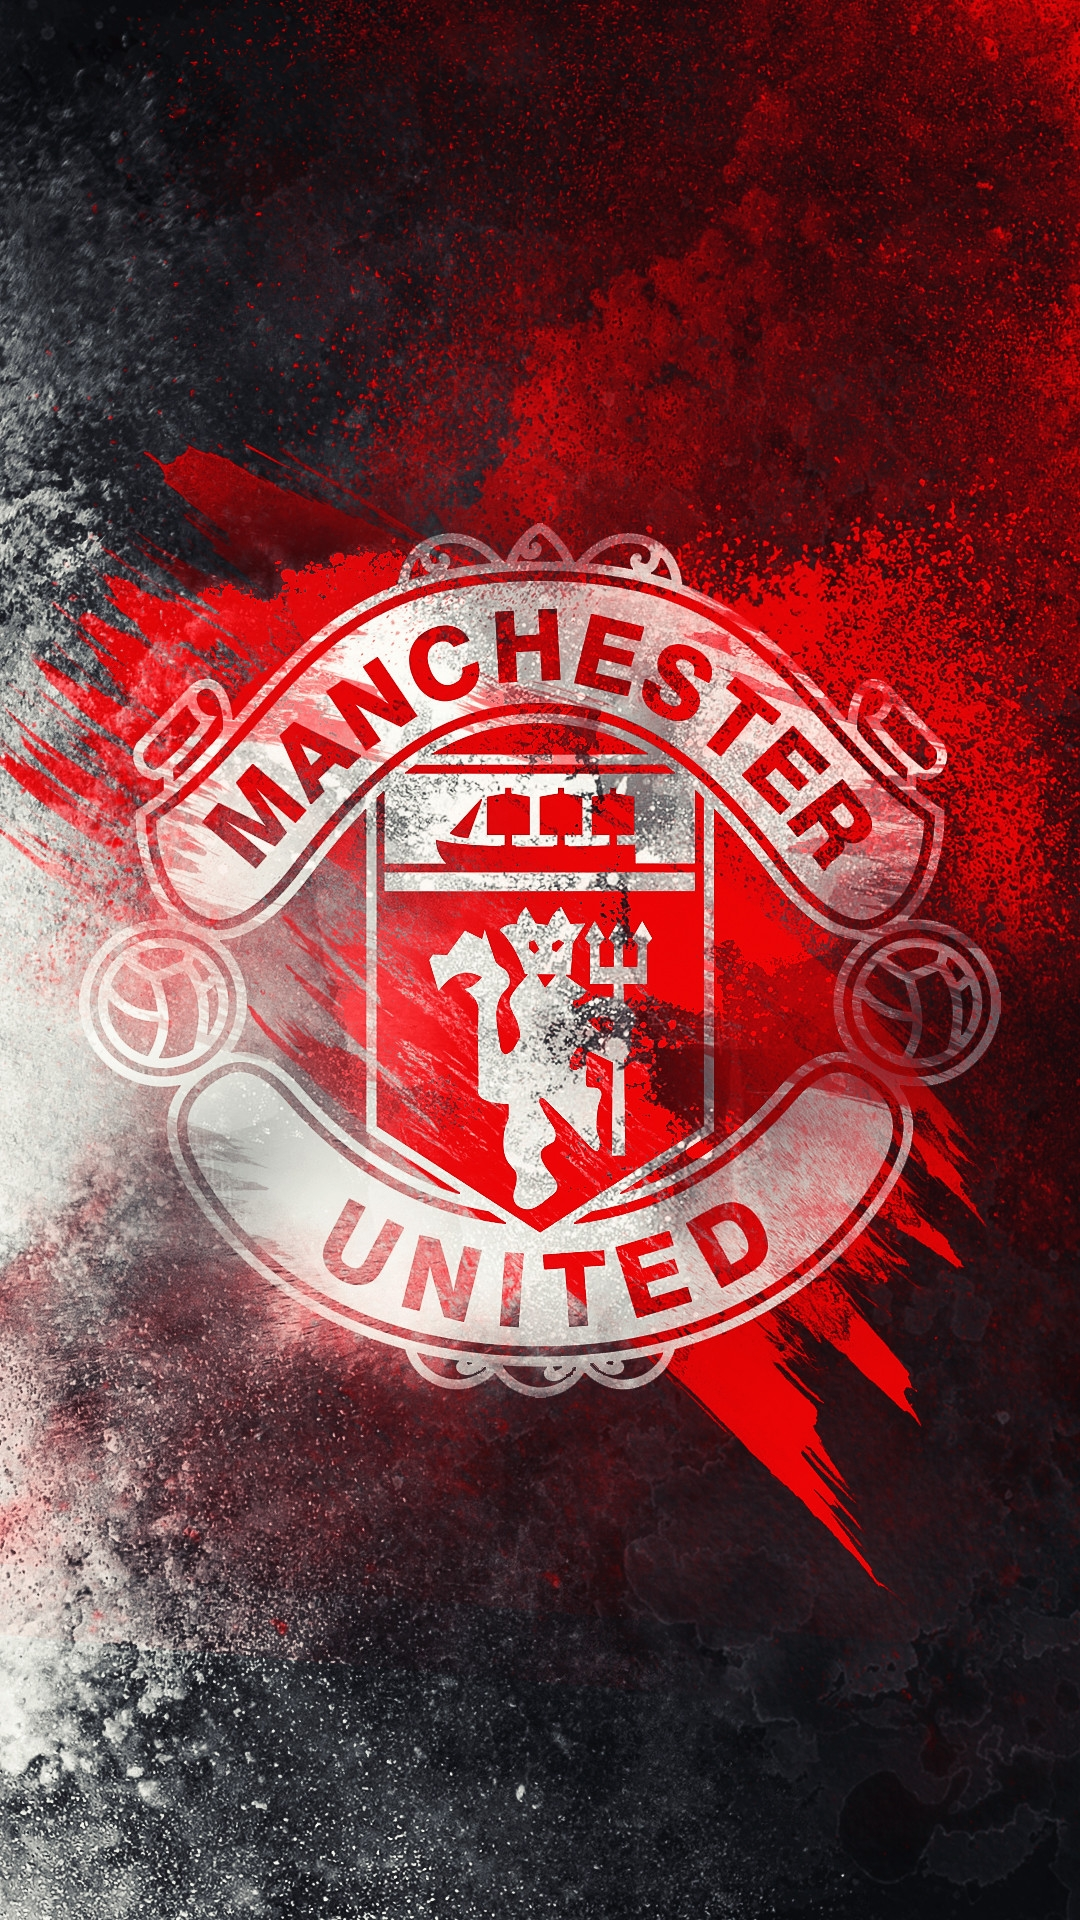 Best Of Manchester United Wallpaper Hd 2017 Great Foofball Club 1080x1920